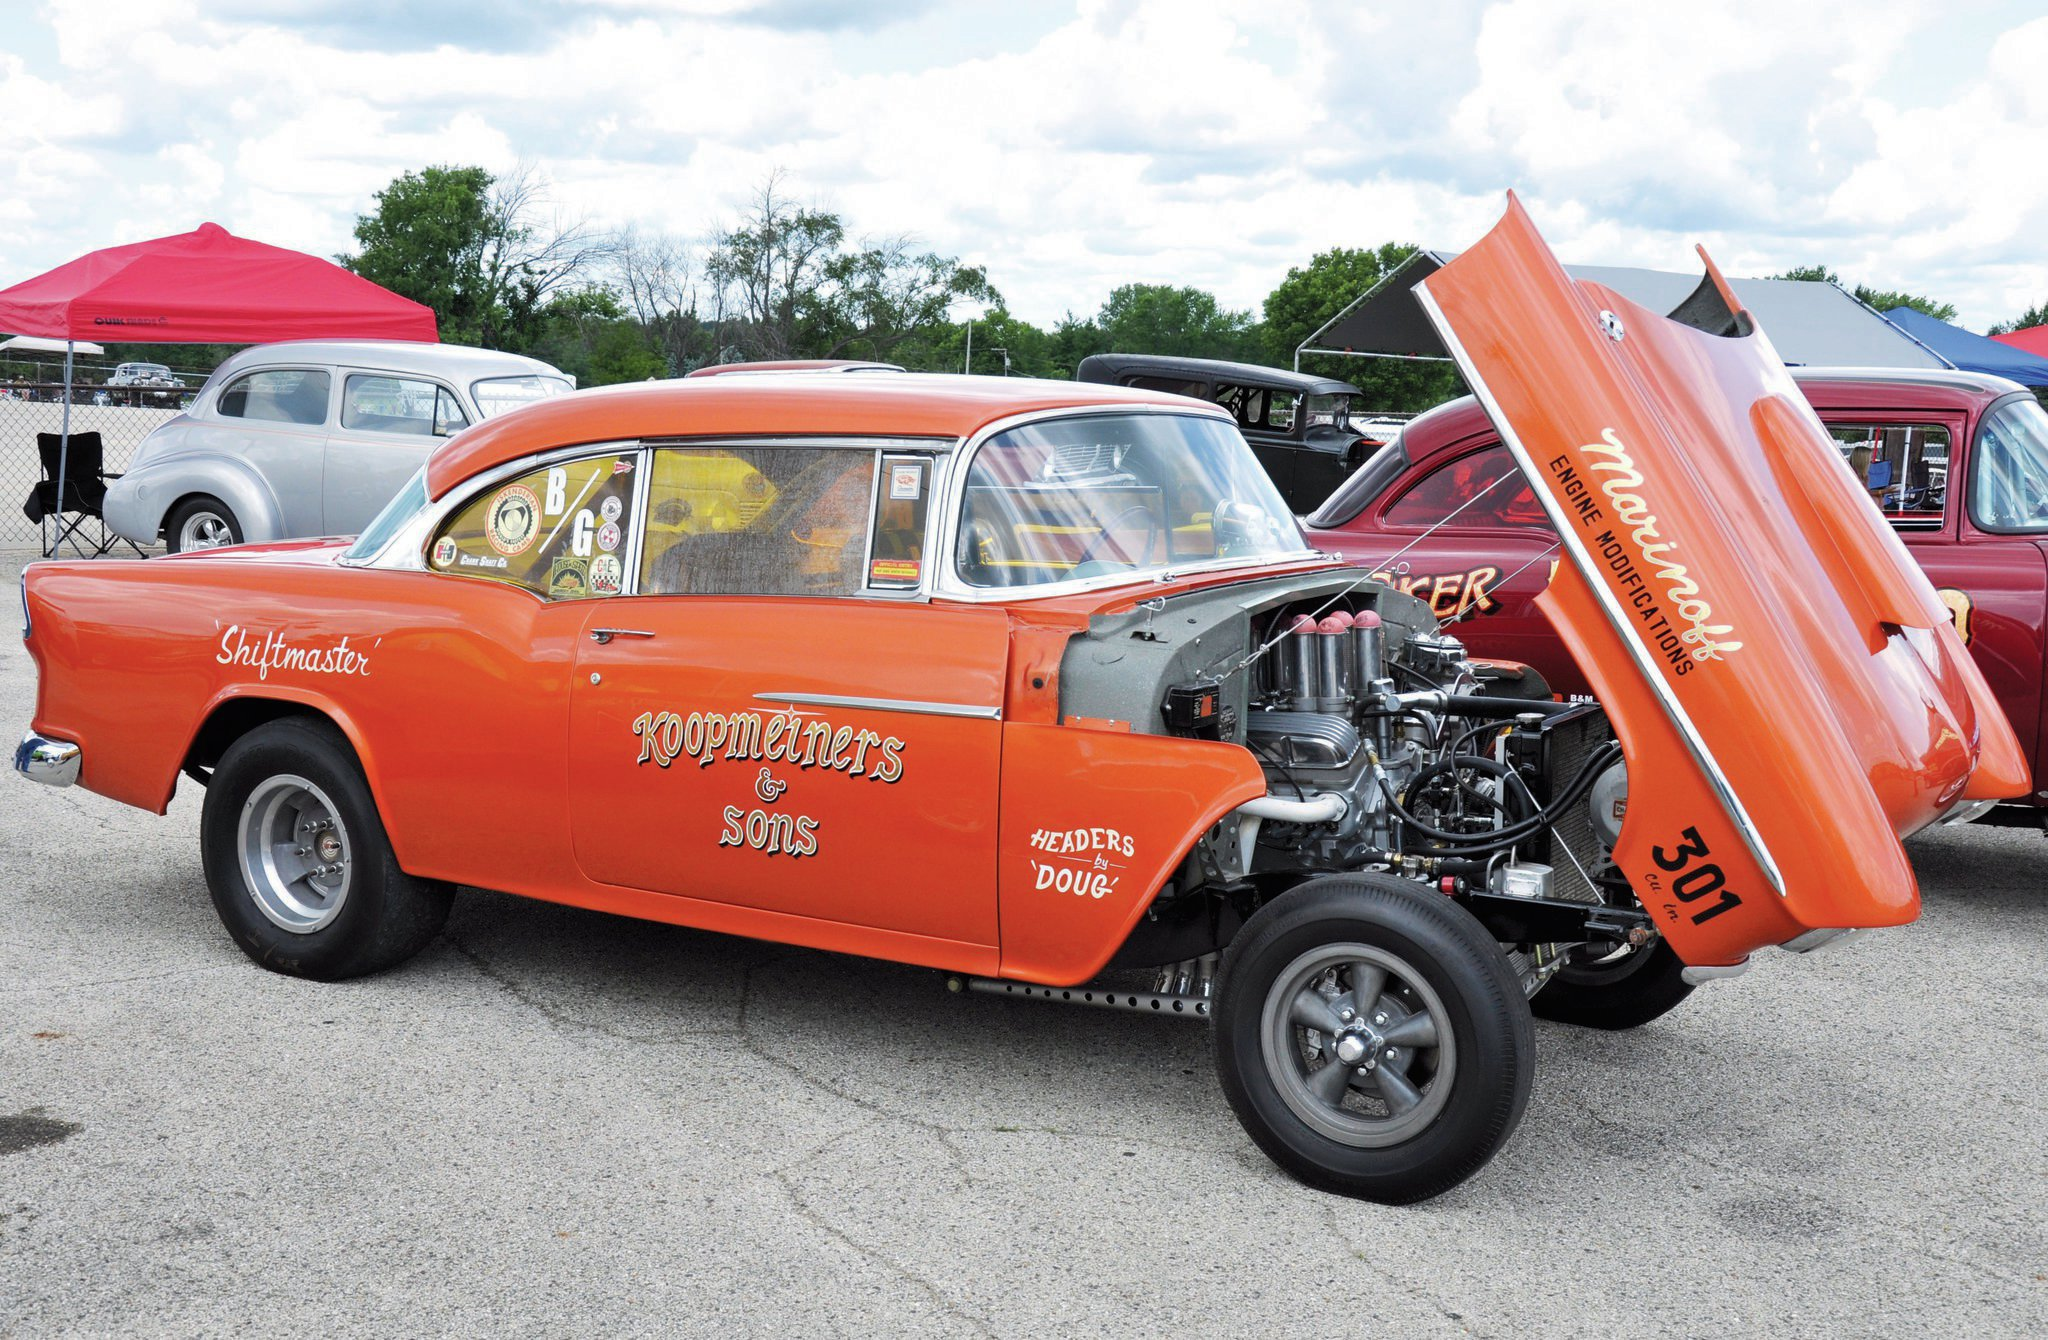 "Tilt front end and family involvement are the story behind this '55 gasser owned by Eric Koopmeiner and sons. Eric is one of the members of MDA who put together the Meltdown Drags. The entire MDA team is to be congratulated for putting on a stellar event that is now on the ""can't miss"" list for 2015."